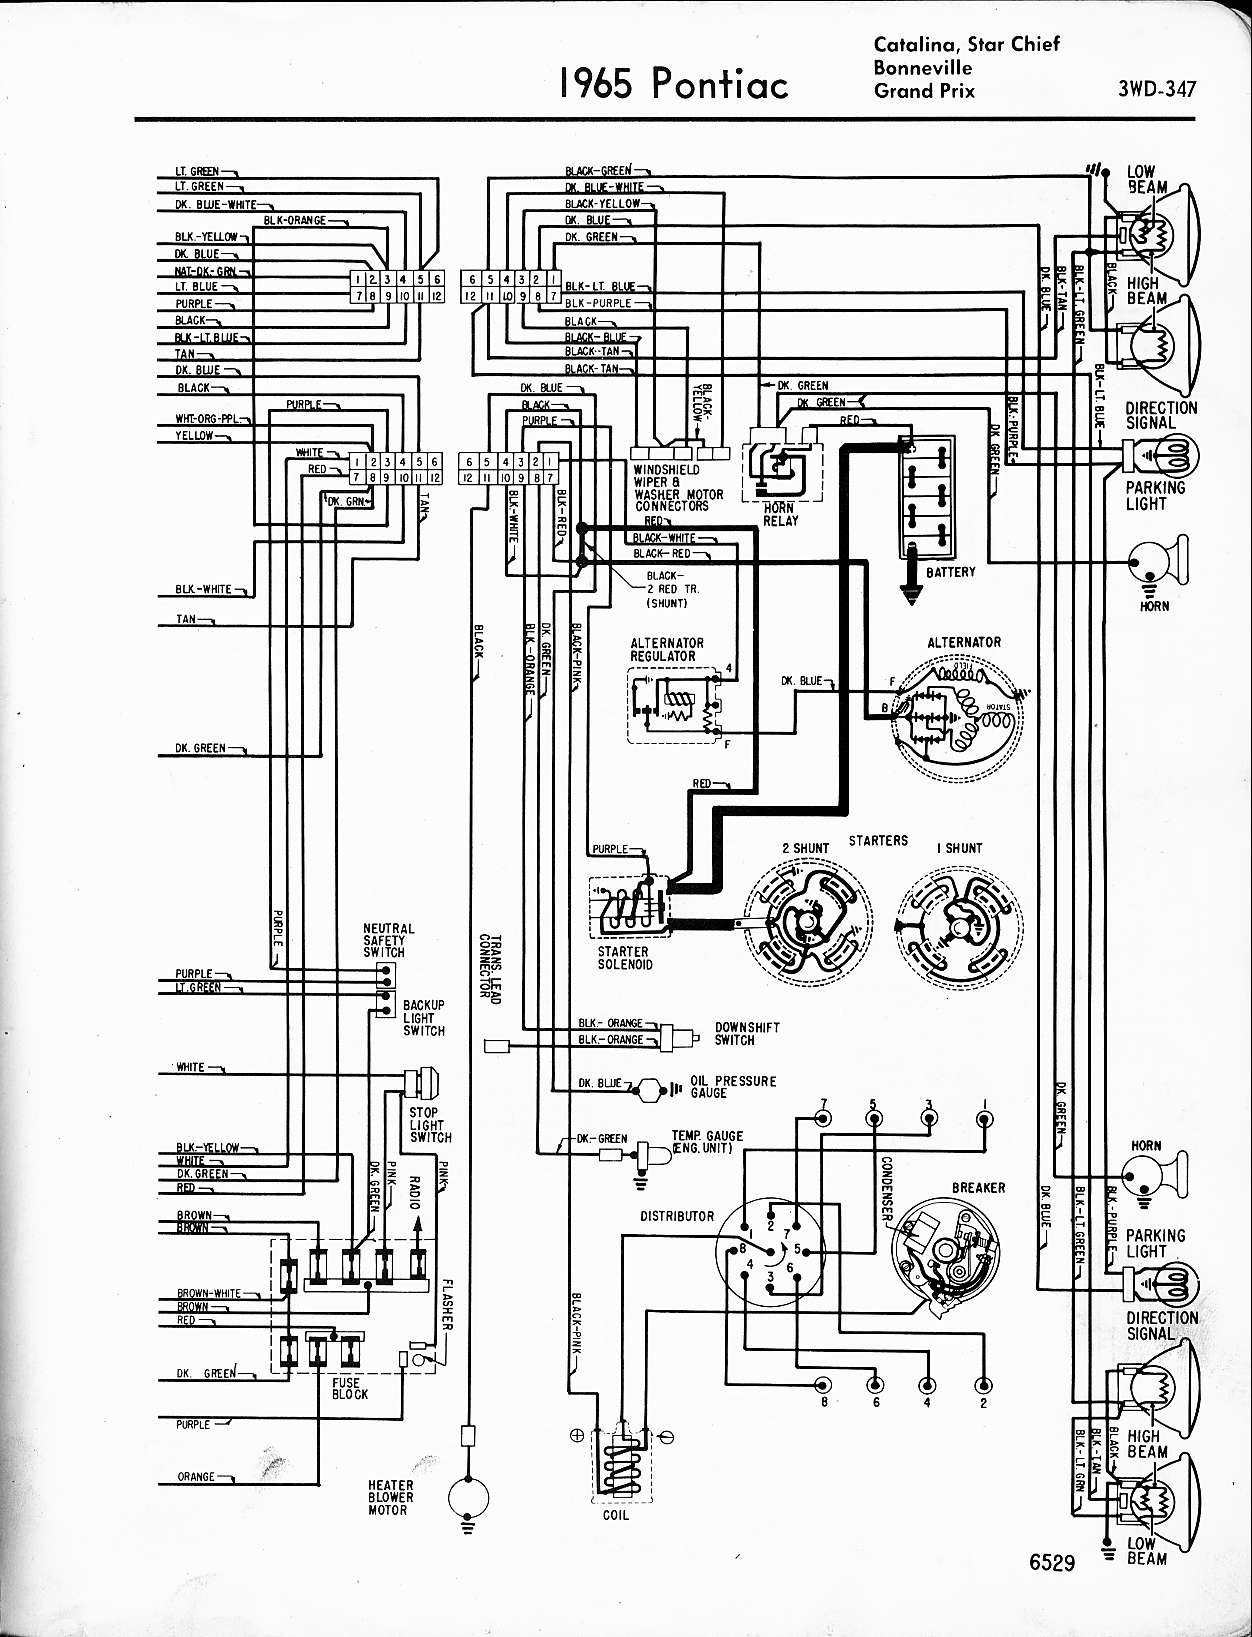 wallace racing wiring diagrams 1964 gto wiring-diagram 1965 catalina, star  chief, bonneville